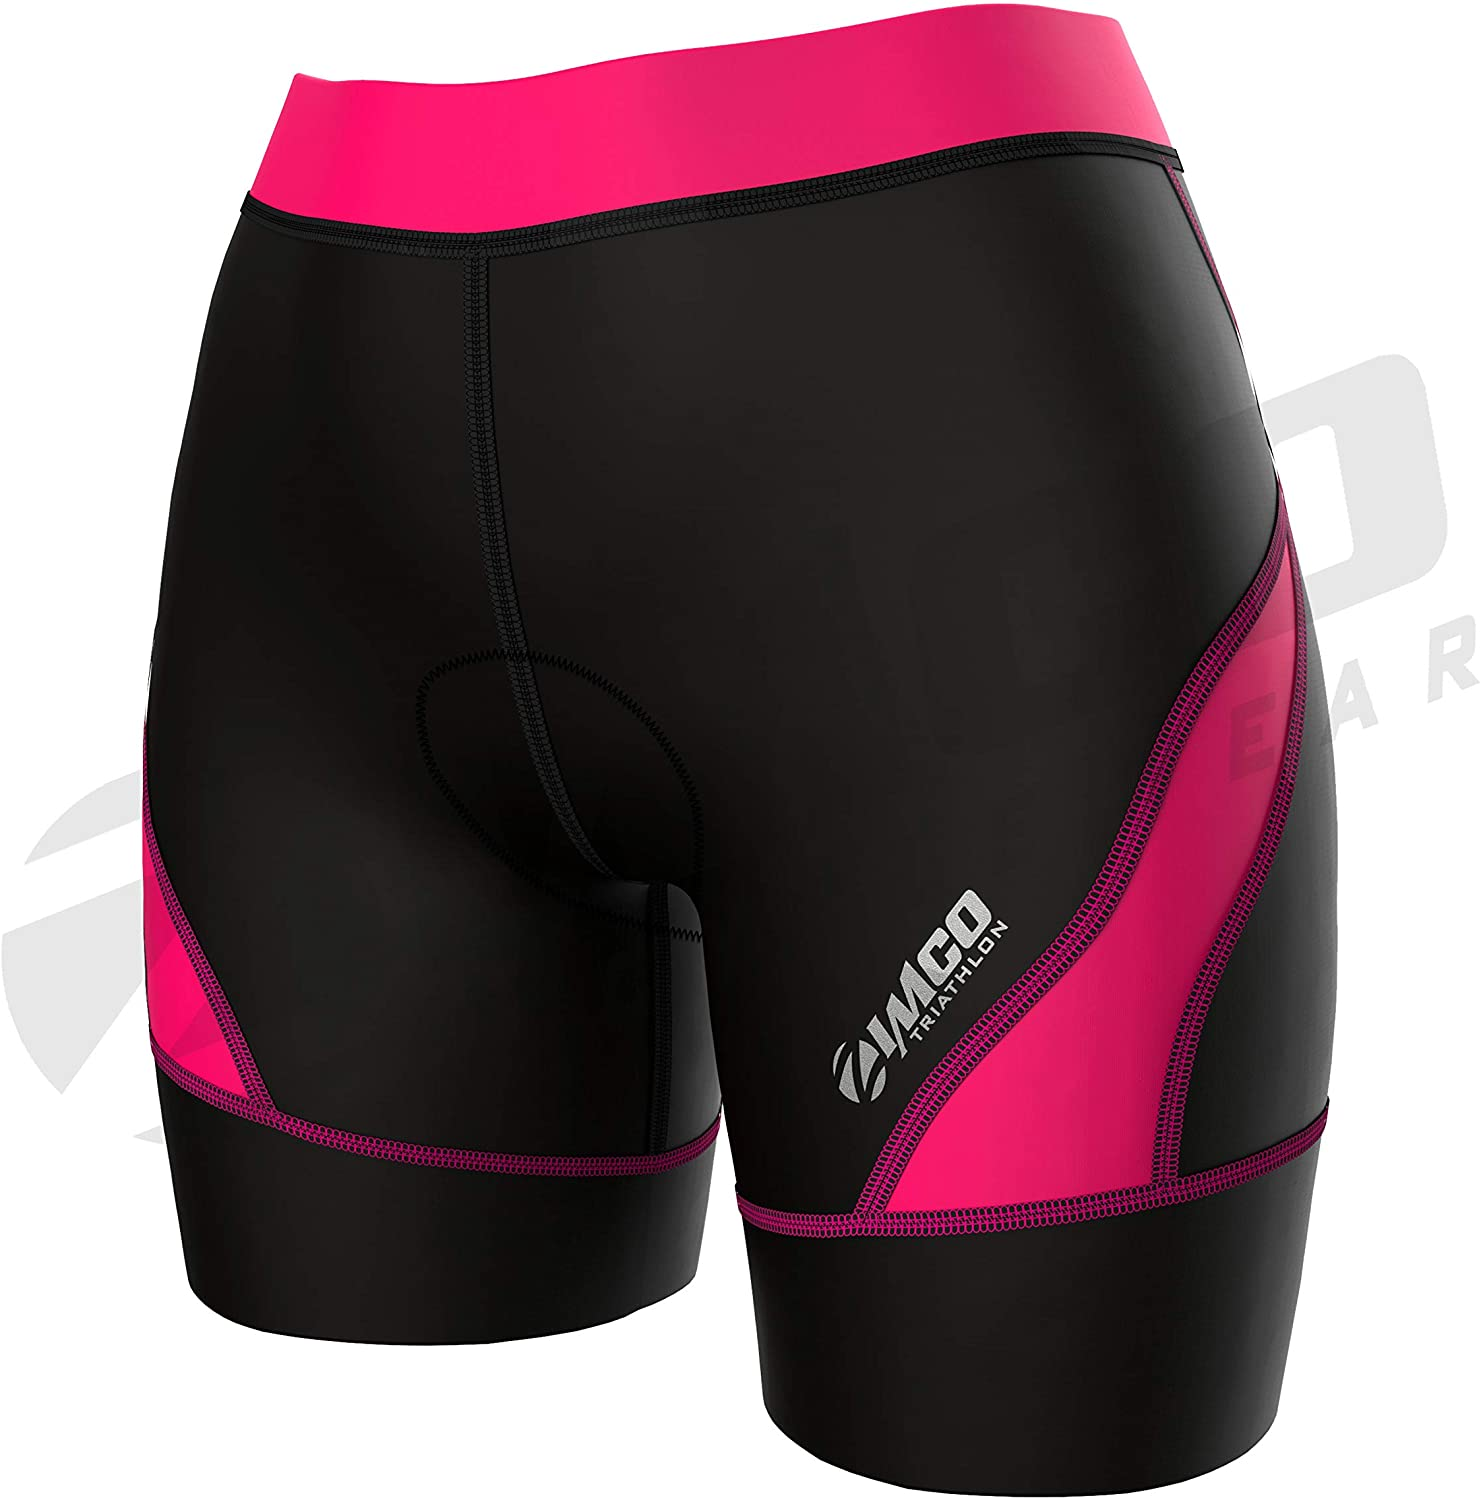 Zimco Core Tri Shorts Women | Triathlon Shorts Women | Womens Triathlon Short | Women's 8-Inch Triathlon Bike Short Padded